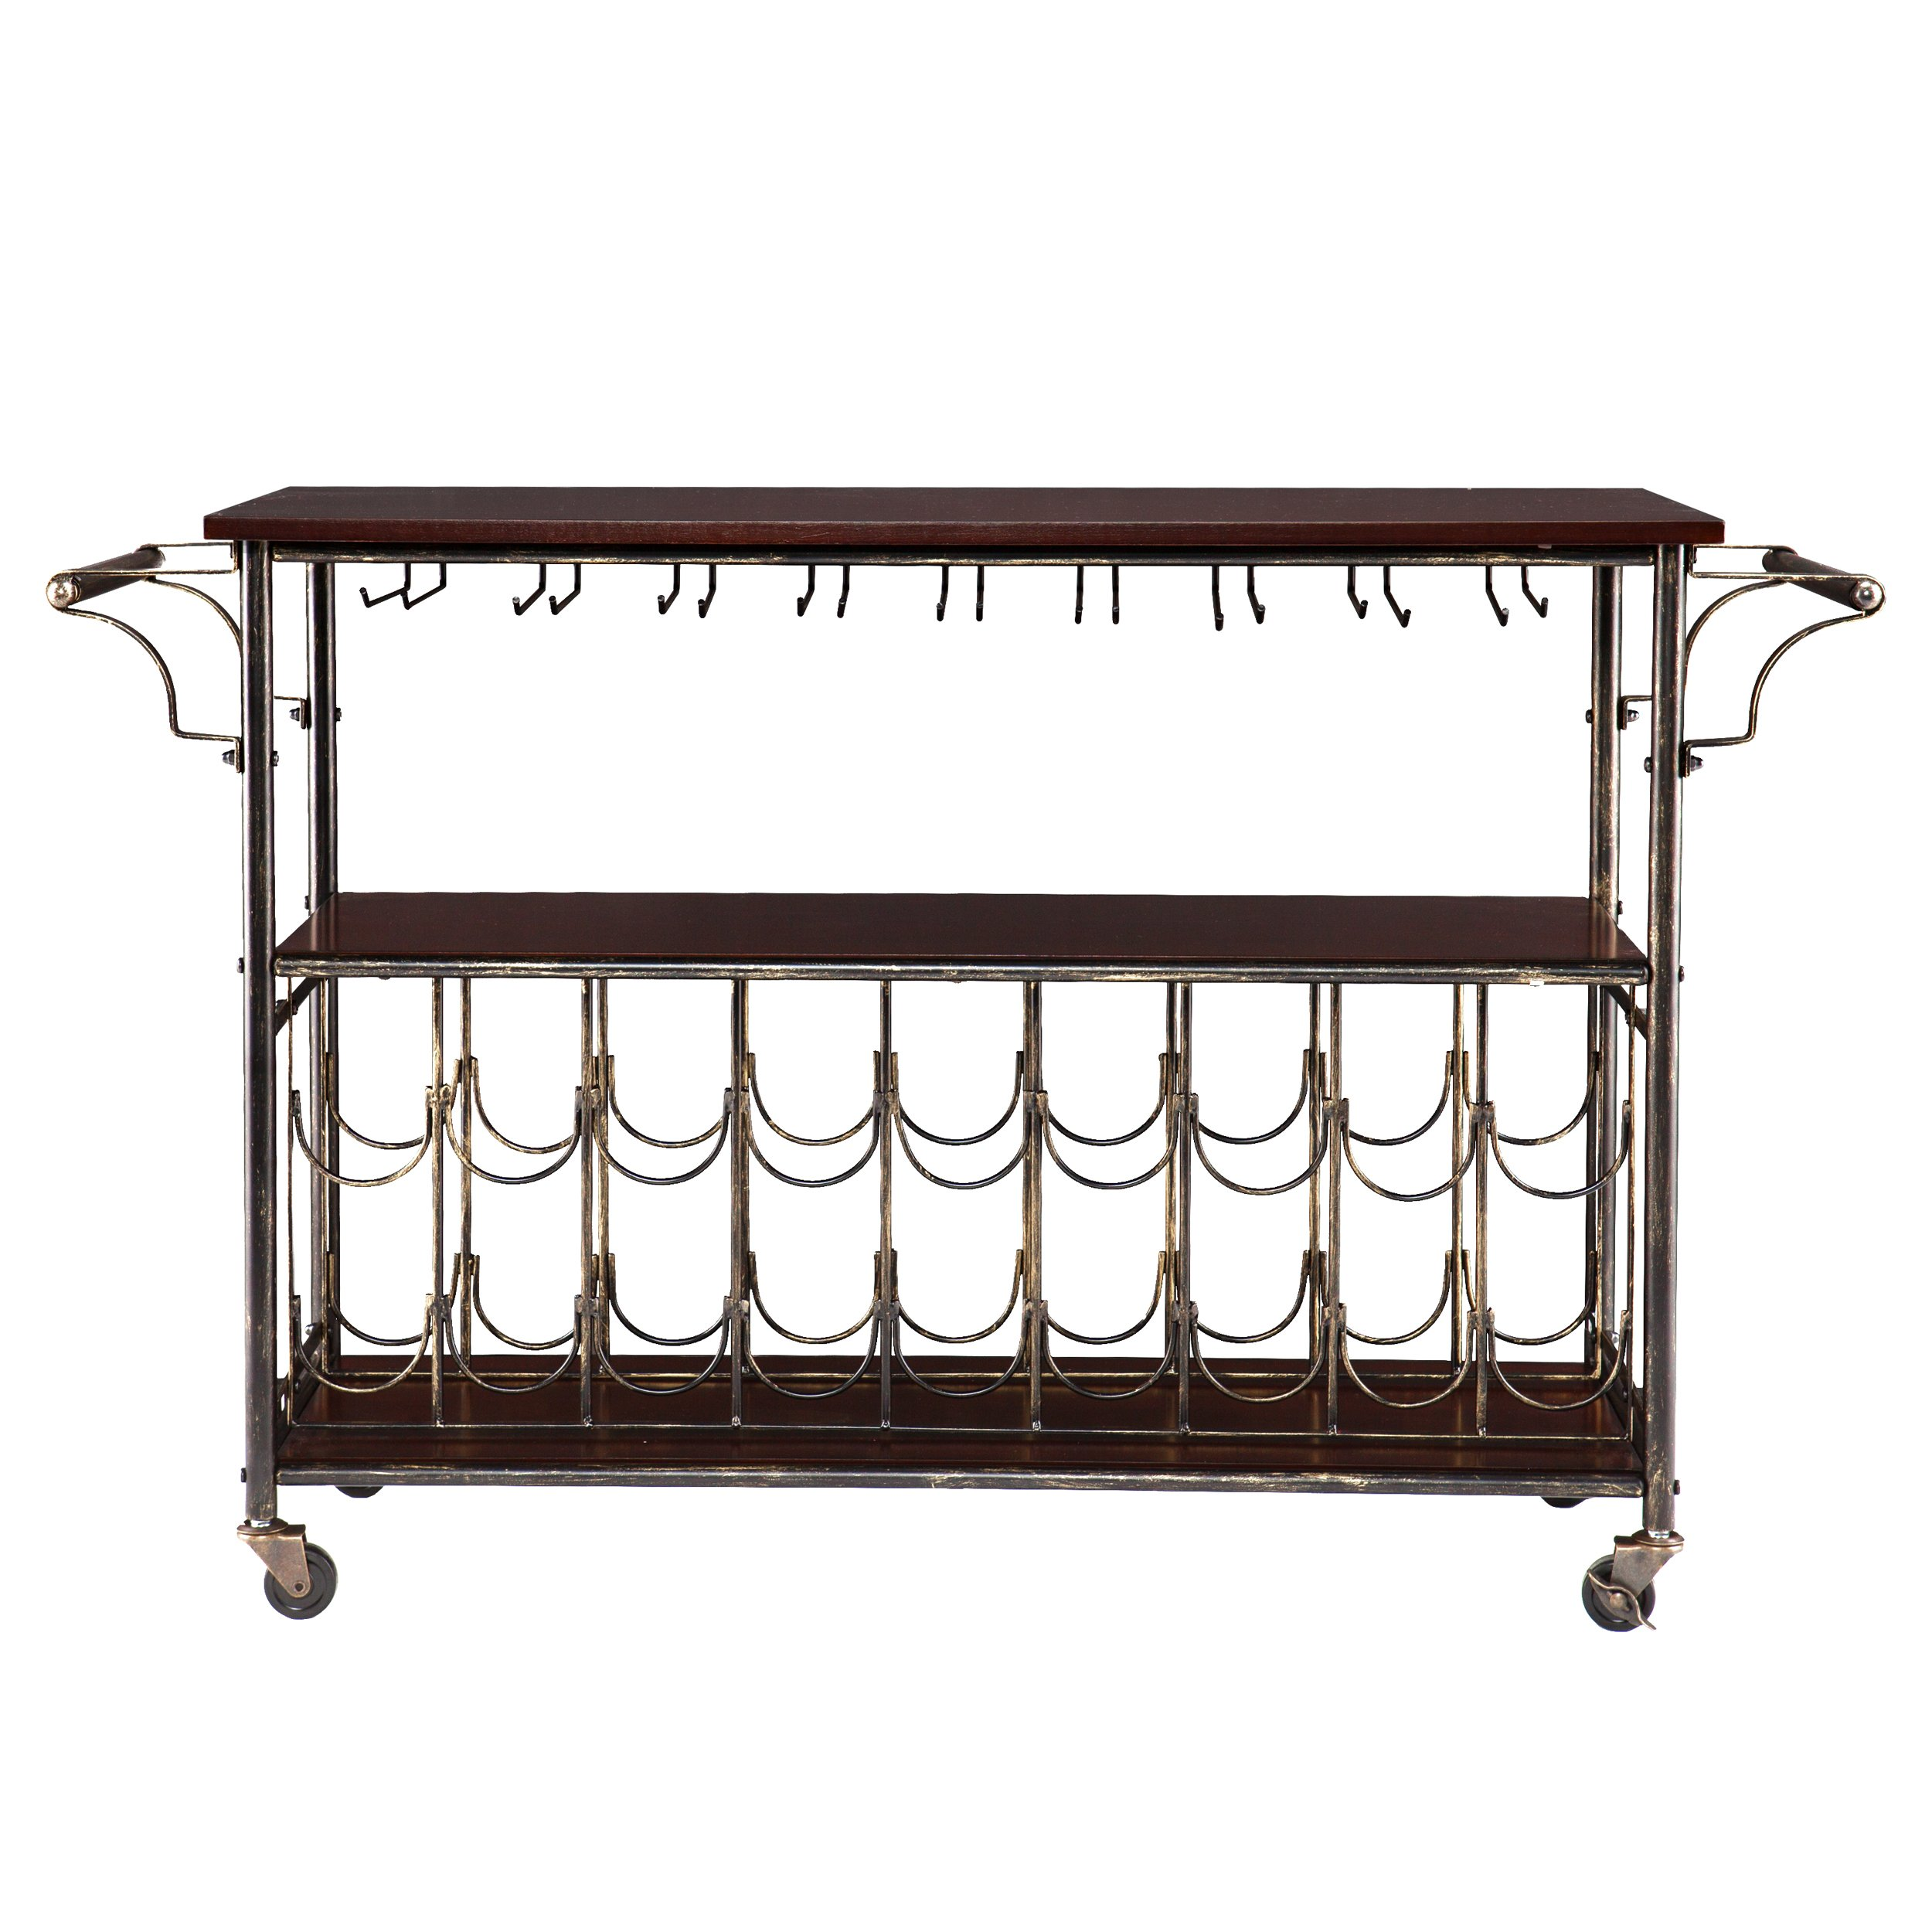 Rolden Wine & Bar Cart - Hanging Space Underneath - Expresso w/Brushed Black & Gold Finish by Southern Enterprises